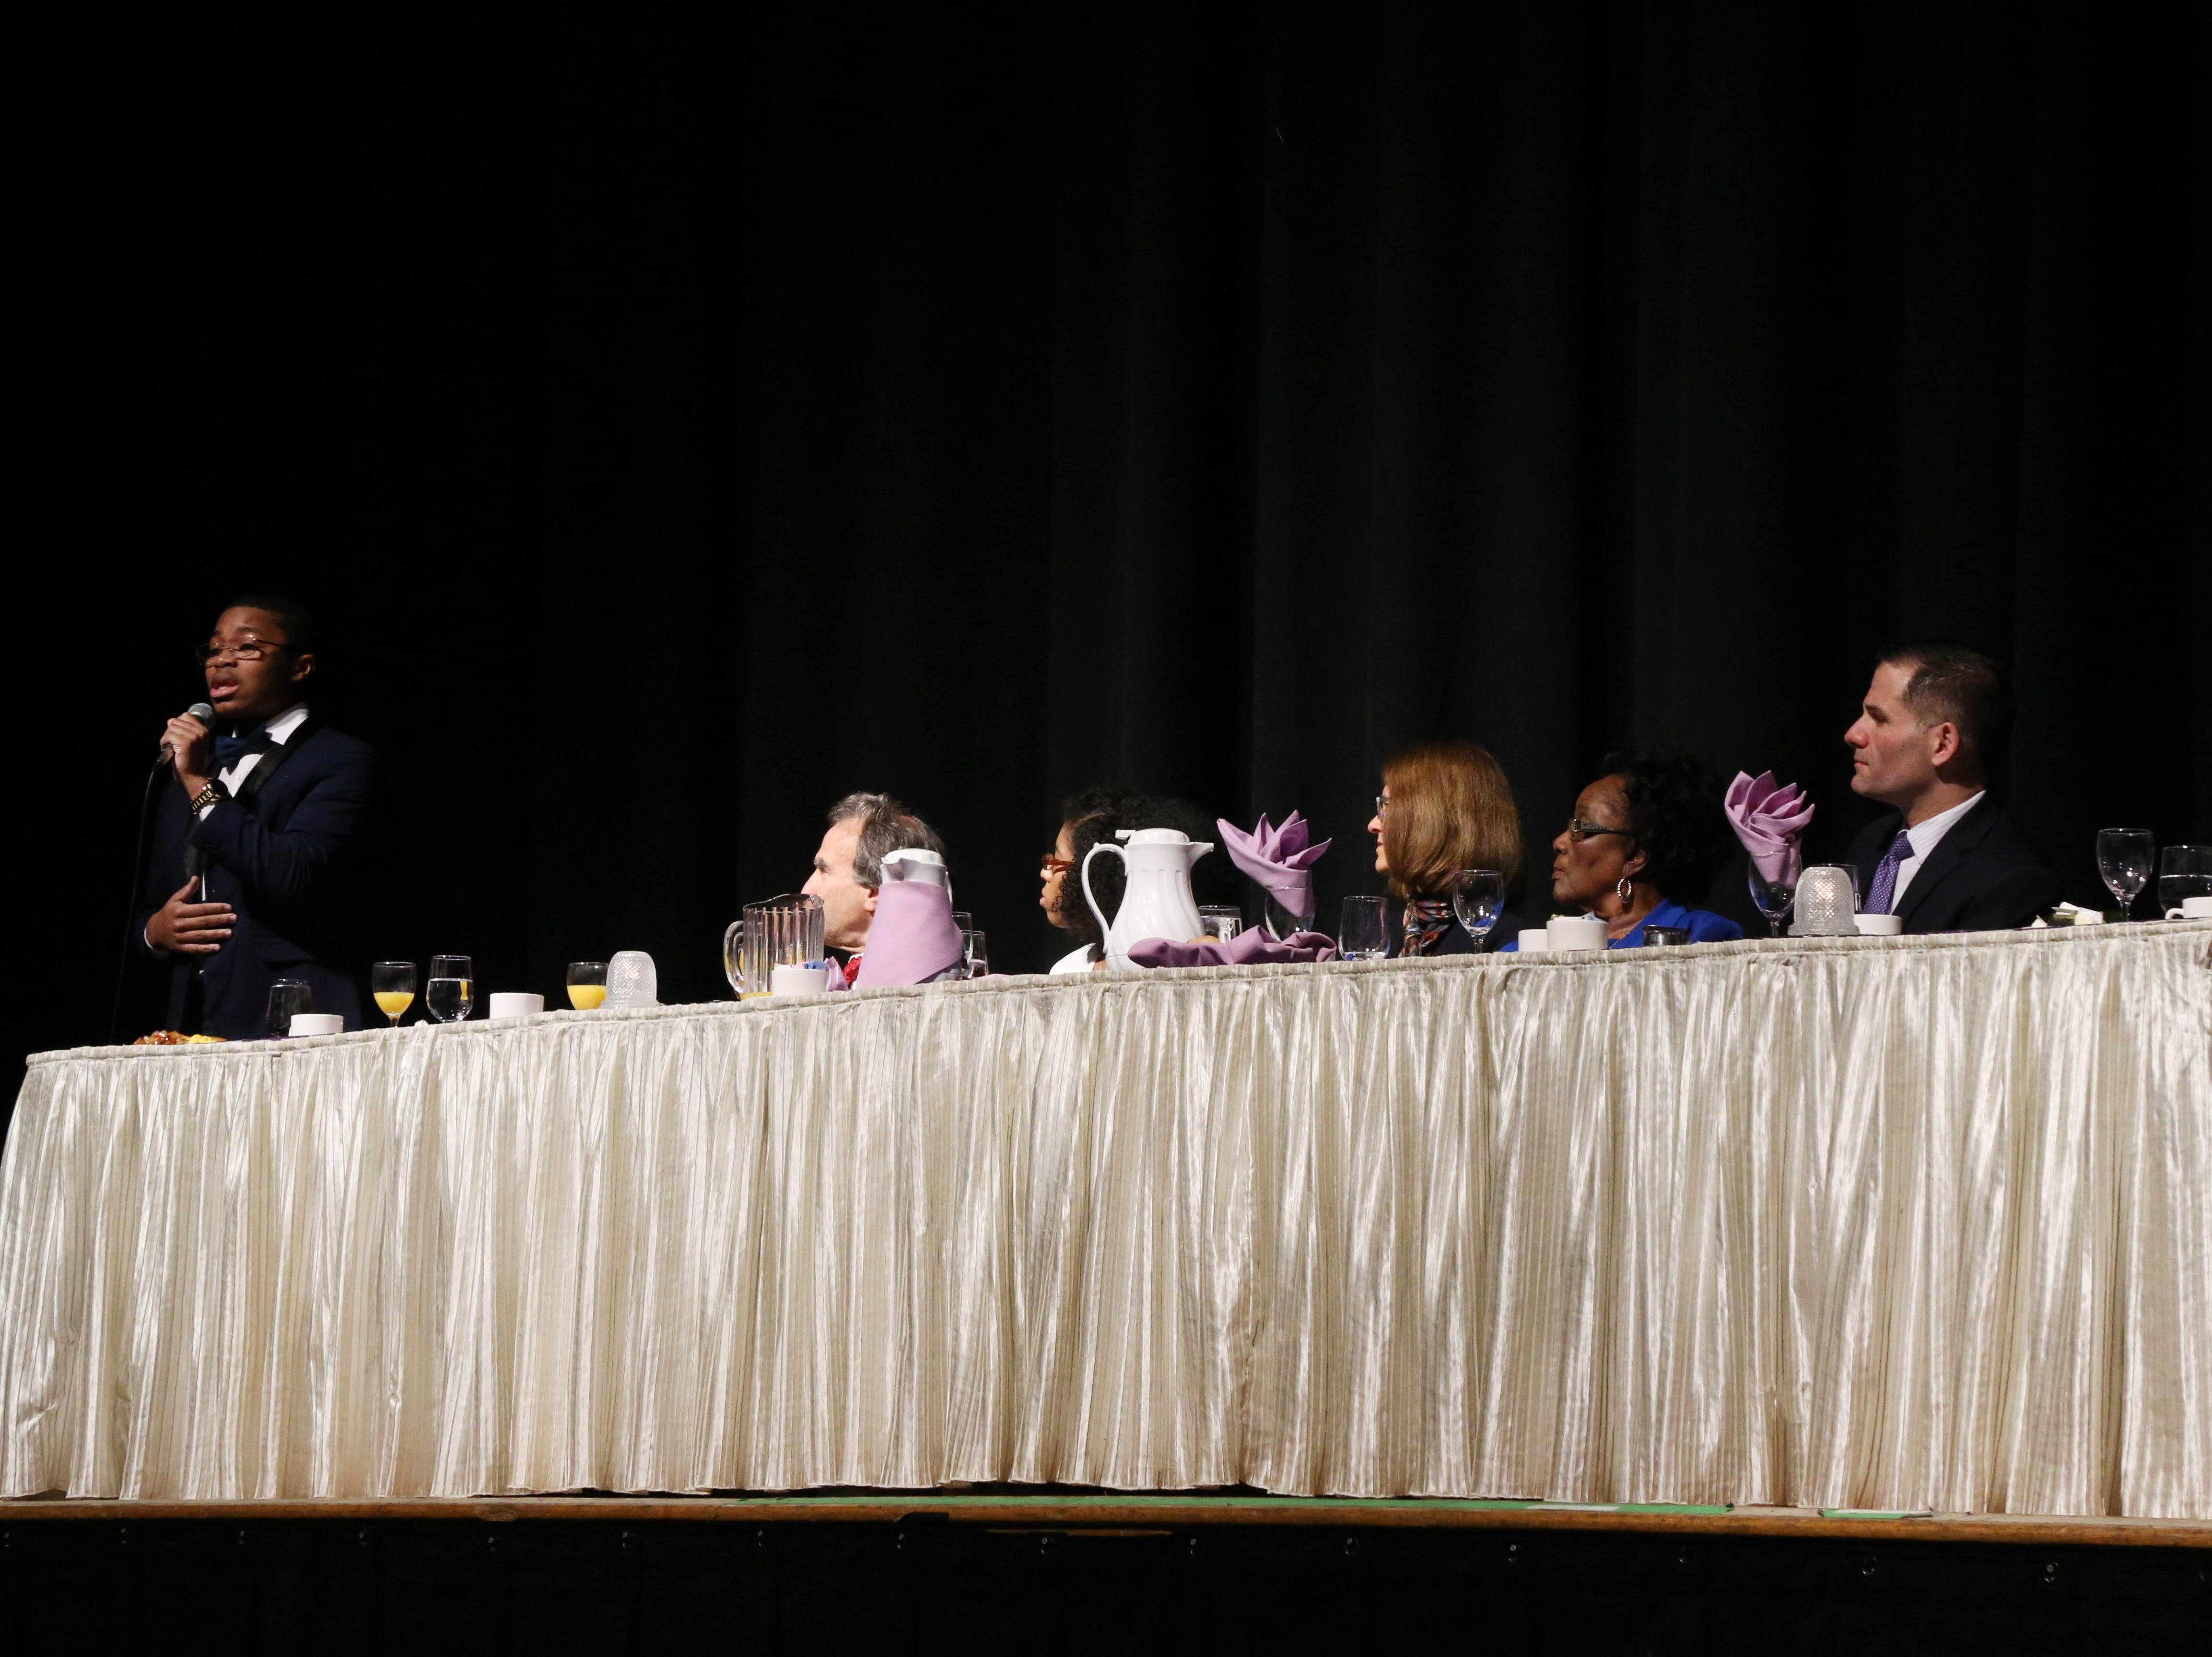 Youth honoree Richmond N. Addae provides a musical interlude during the Martin Luther King Jr. Breakfast in the City of Poughkeepsie on January 25, 2019.